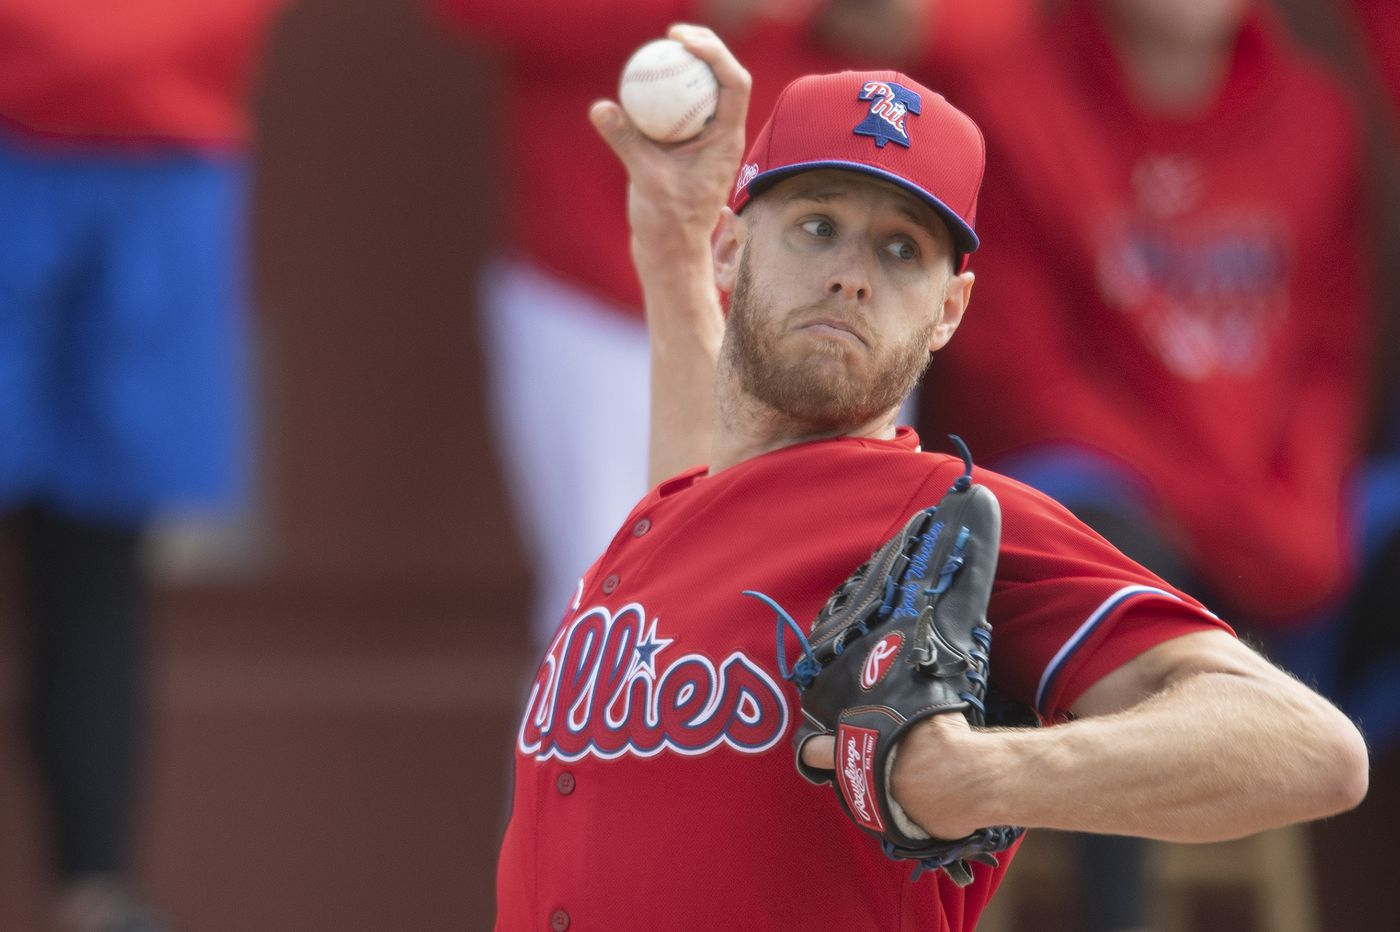 Phillies pitcher Zack Wheeler said his status for the season is uncertain as he awaits birth of child